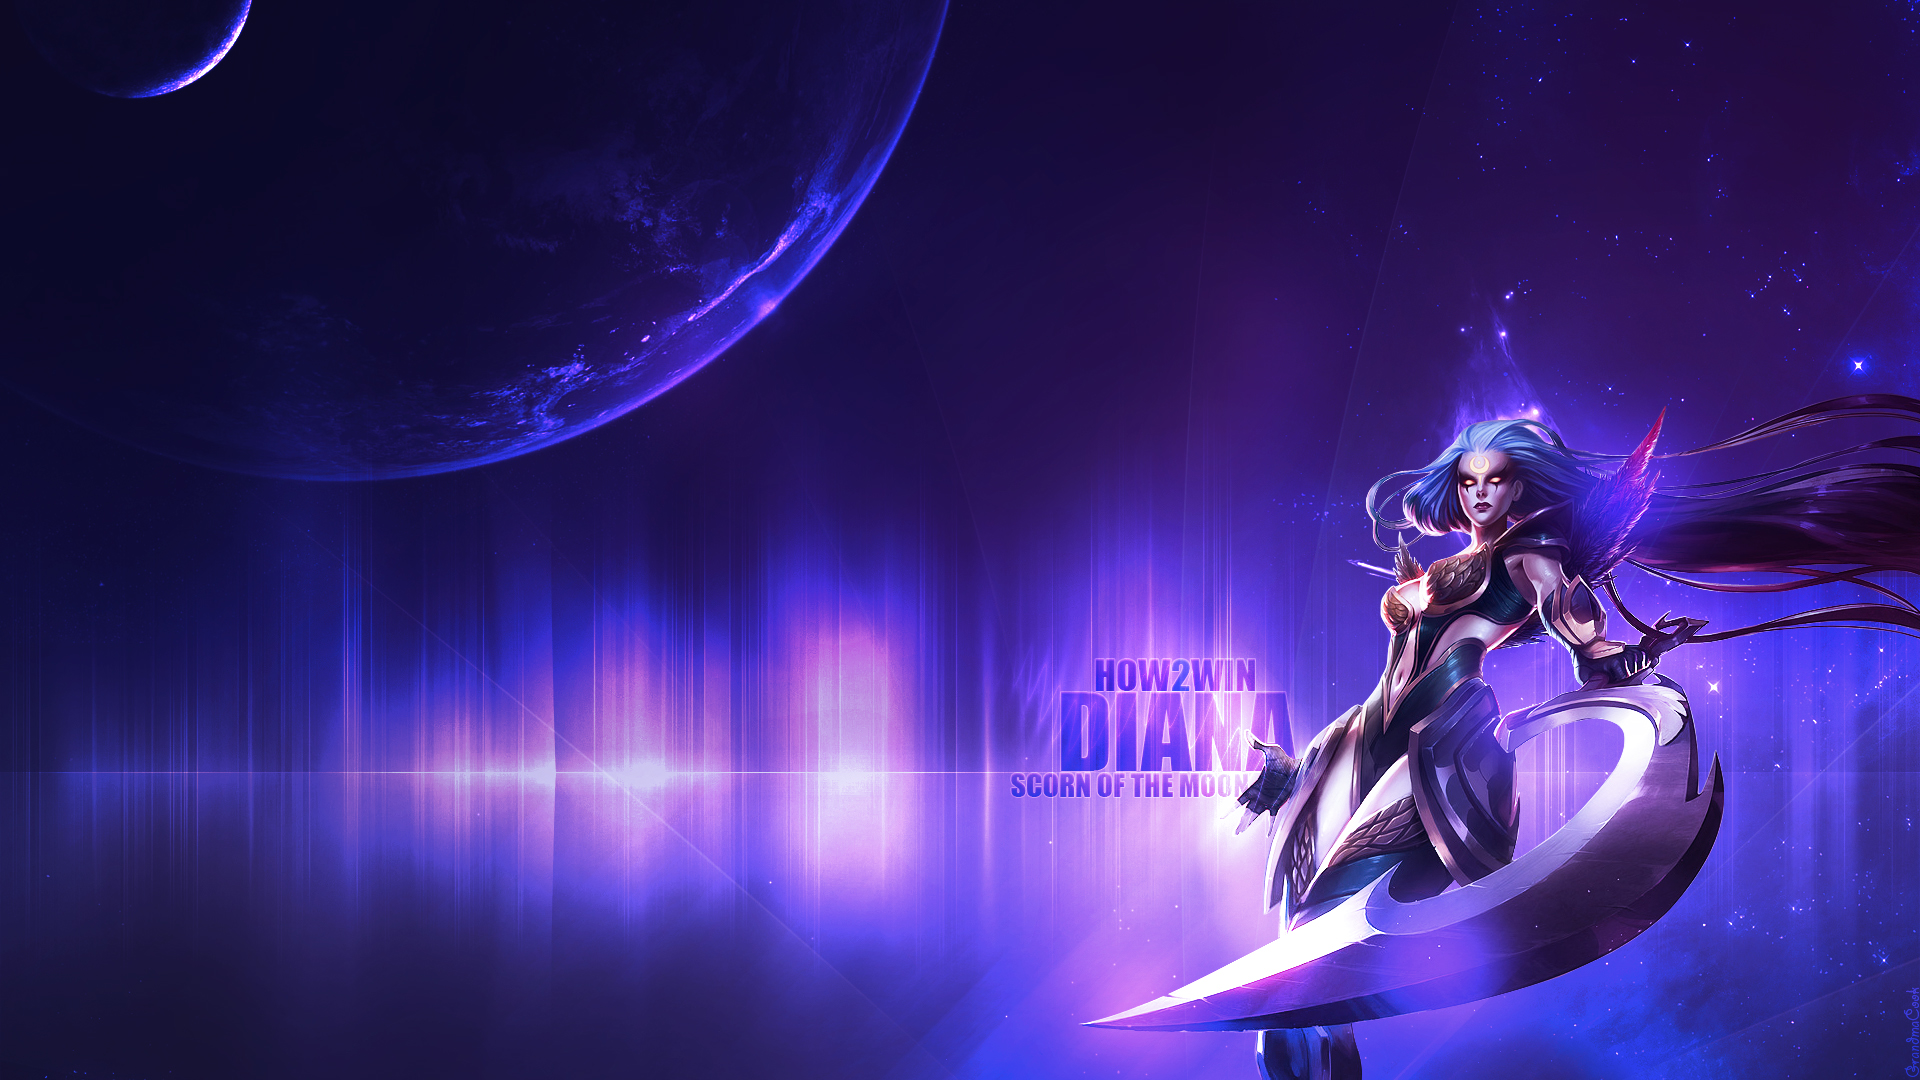 Diana HD Wallpaper 1920x1080 ID44895   WallpaperVortexcom 1920x1080